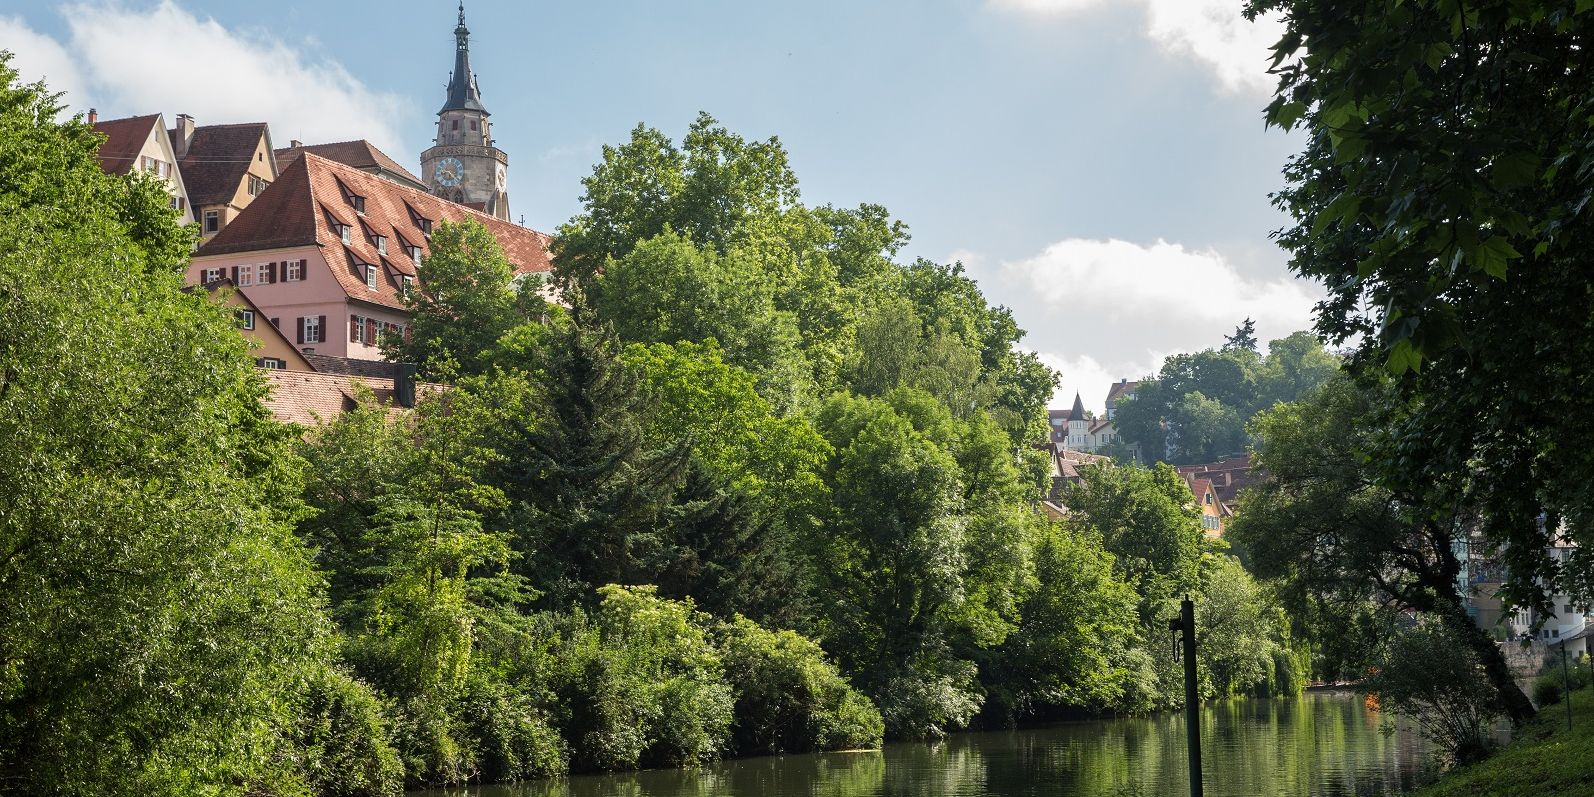 View to the Neckar river with the Stiftskirche church in the background